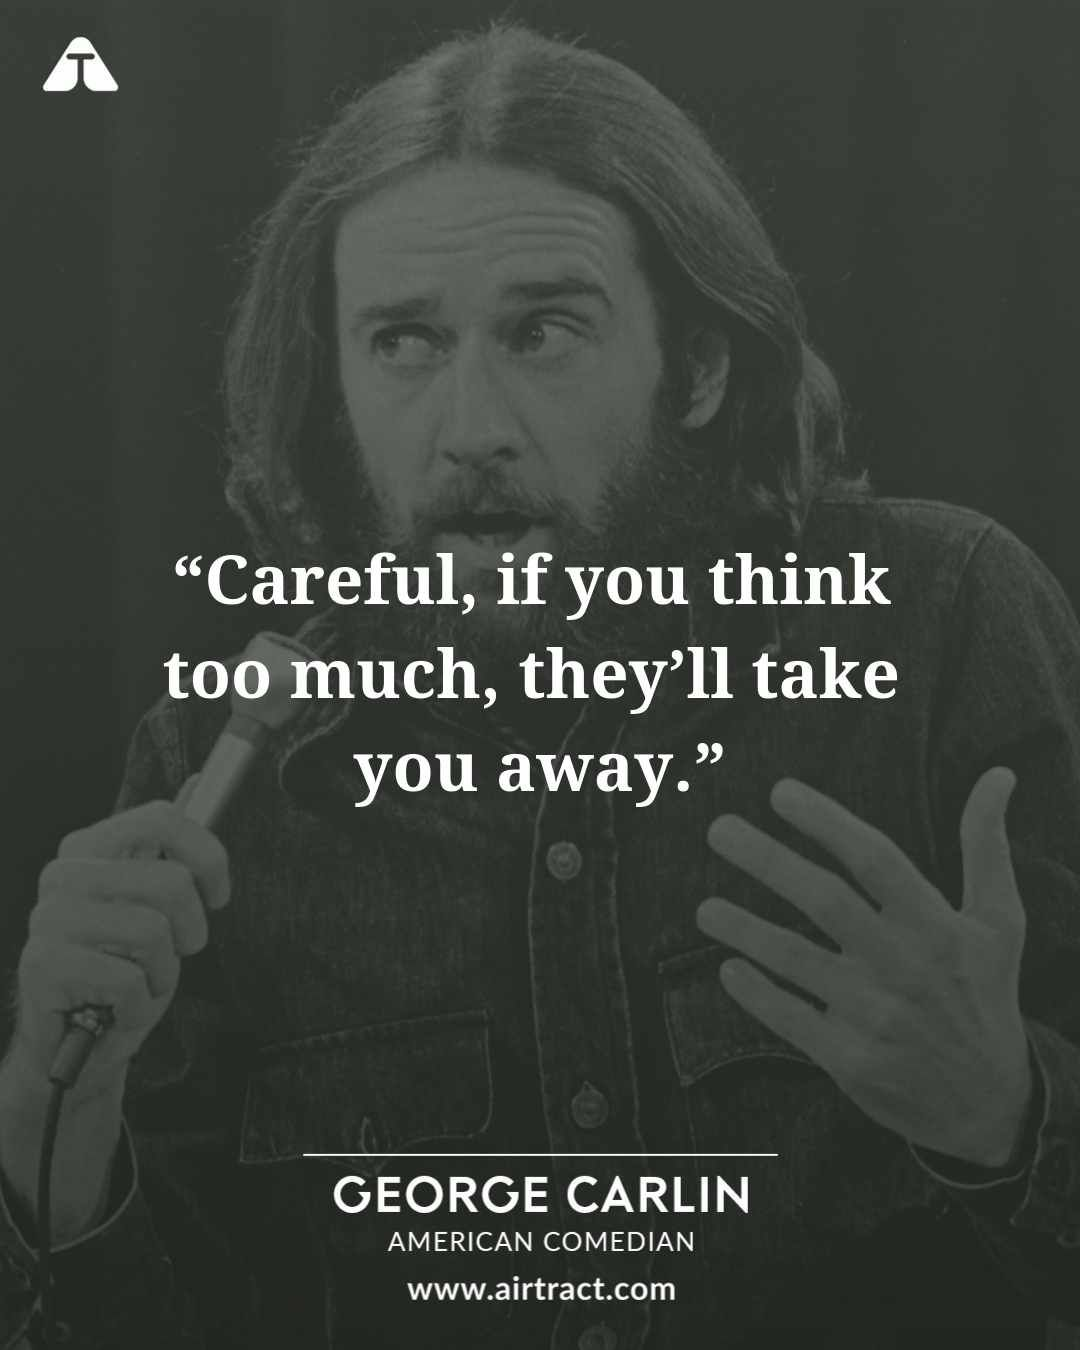 Careful If You Think Too Much They Ll Take You Away George Carlin Georgecarlin Georgecarlinquotes Comedian Comedy Sarcastic Quotes George Carlin Carlin